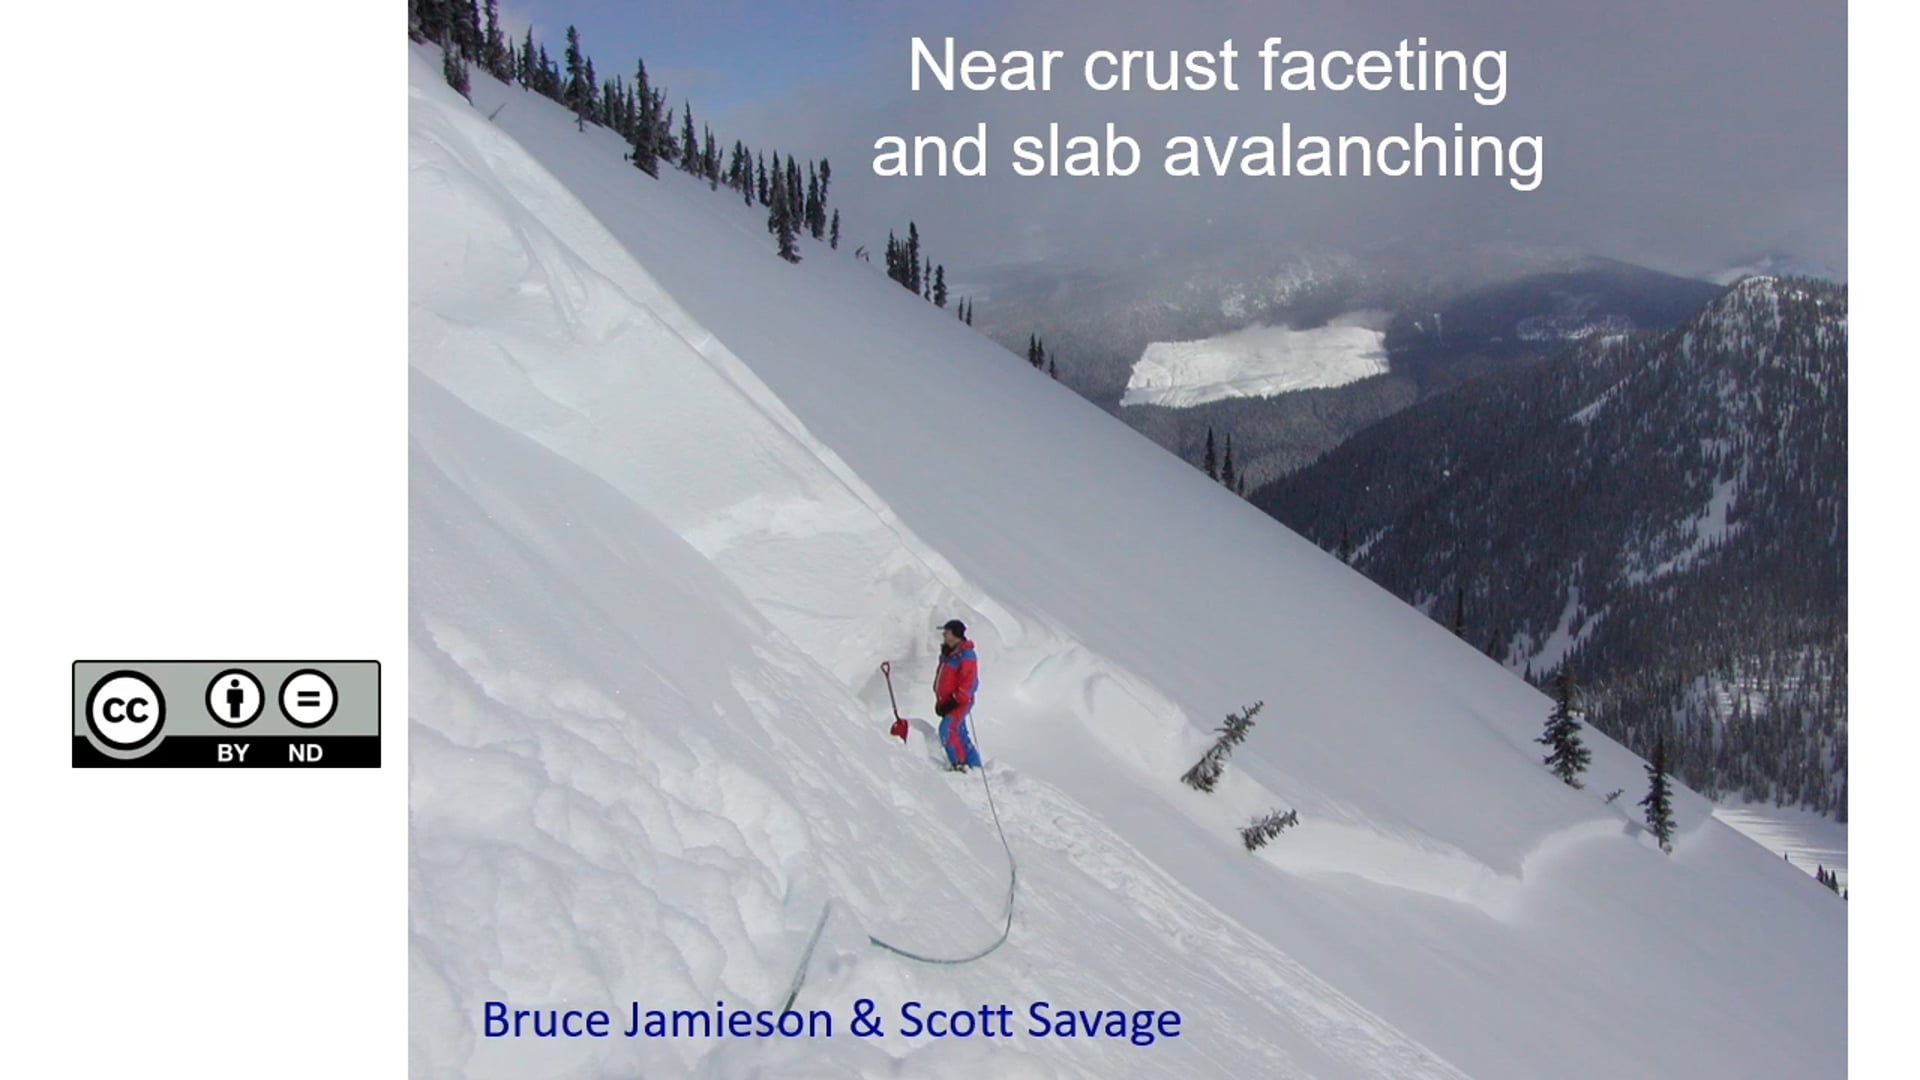 Near crust faceting and slab avalanching